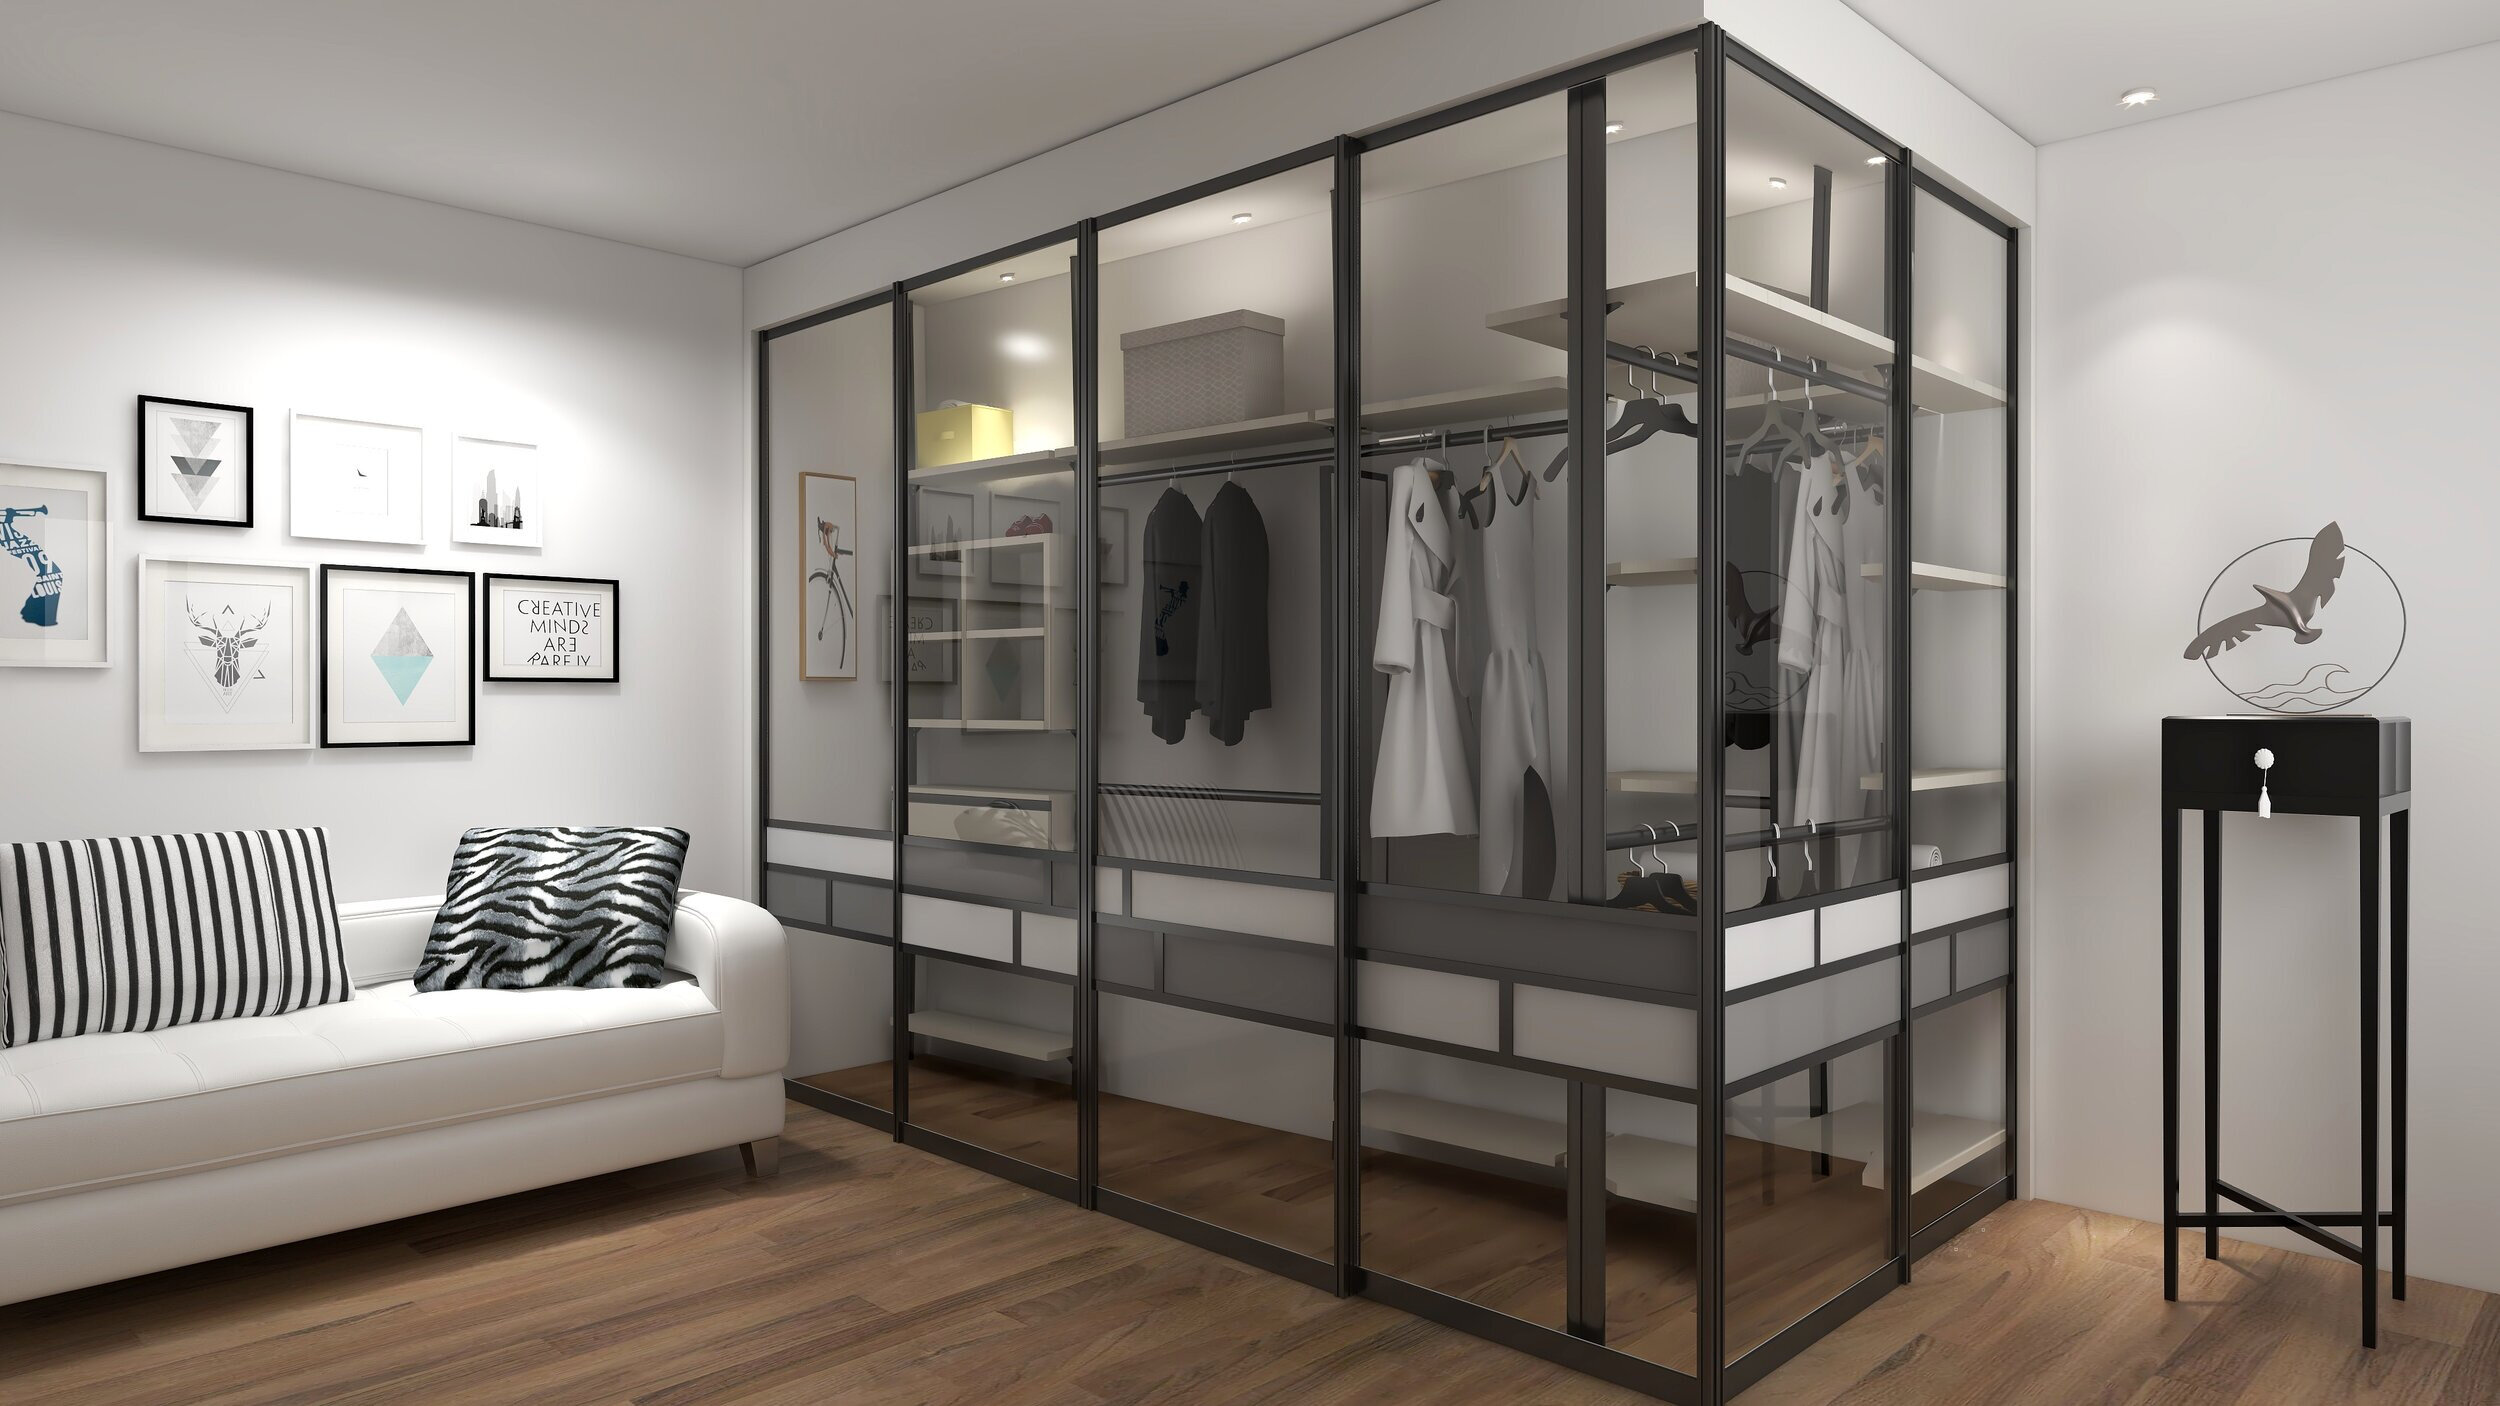 squarerooms-enclosed-walk-in-wardrobe-ideas-hdb